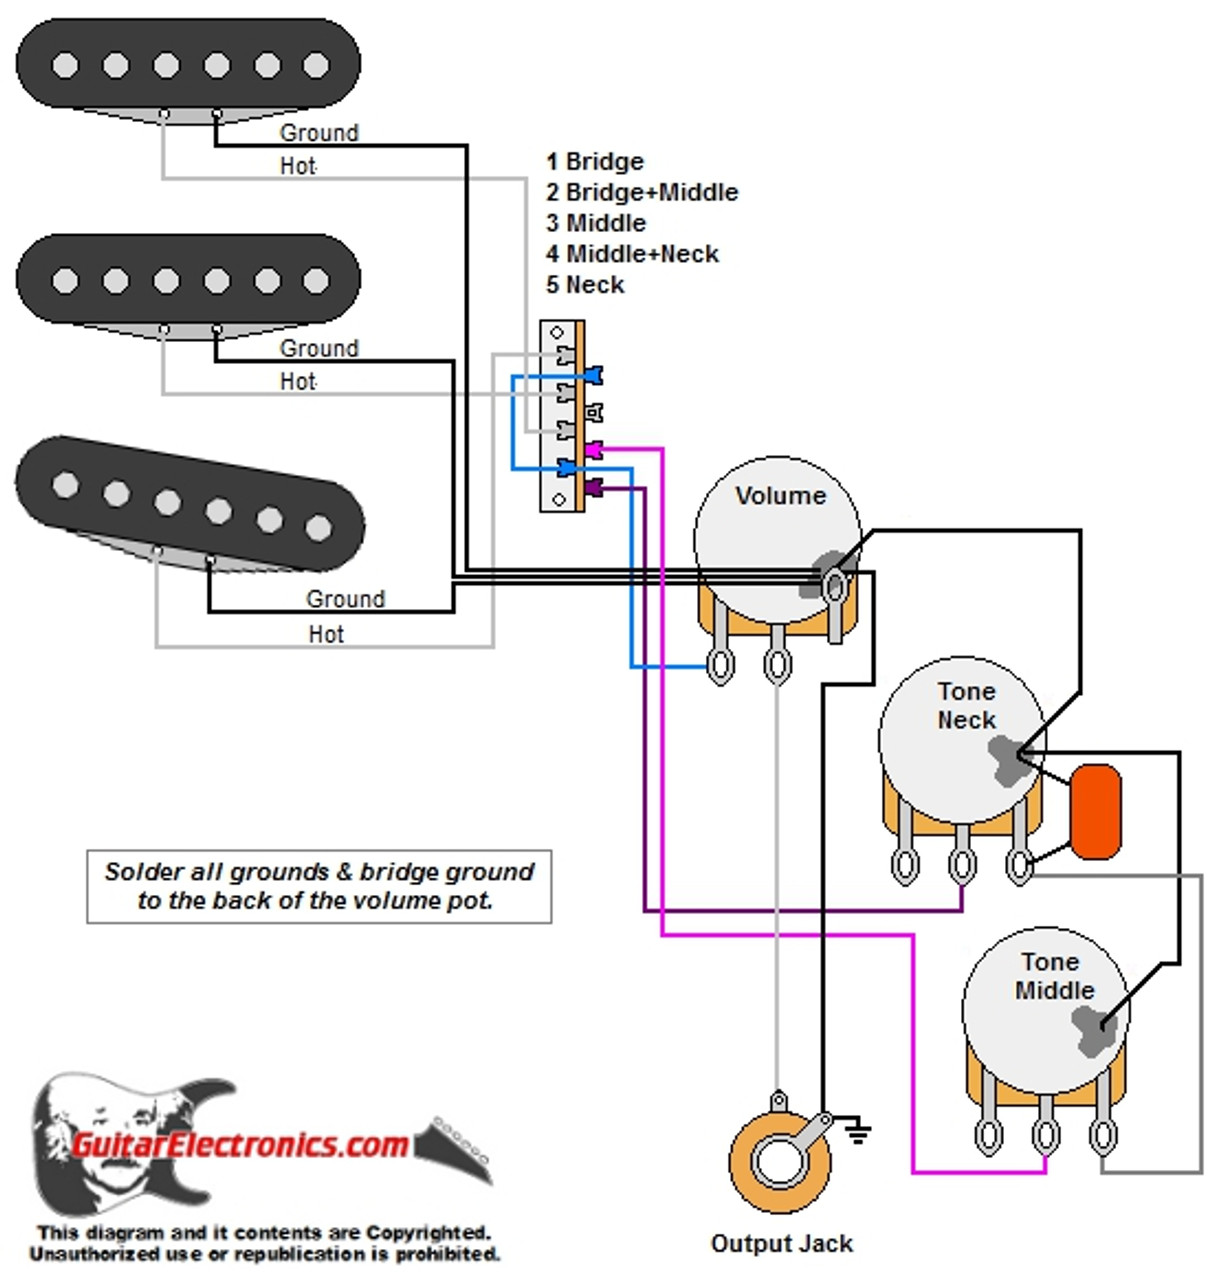 Strat Style Guitar Wiring Diagram on opto 22 wiring diagram, switchcraft wiring diagram, orbit wiring diagram, cole hersee wiring diagram, ultra wiring diagram, alpha wiring diagram, oasis wiring diagram, schaller wiring diagram, cts wiring diagram, danelectro wiring diagram, omron wiring diagram,